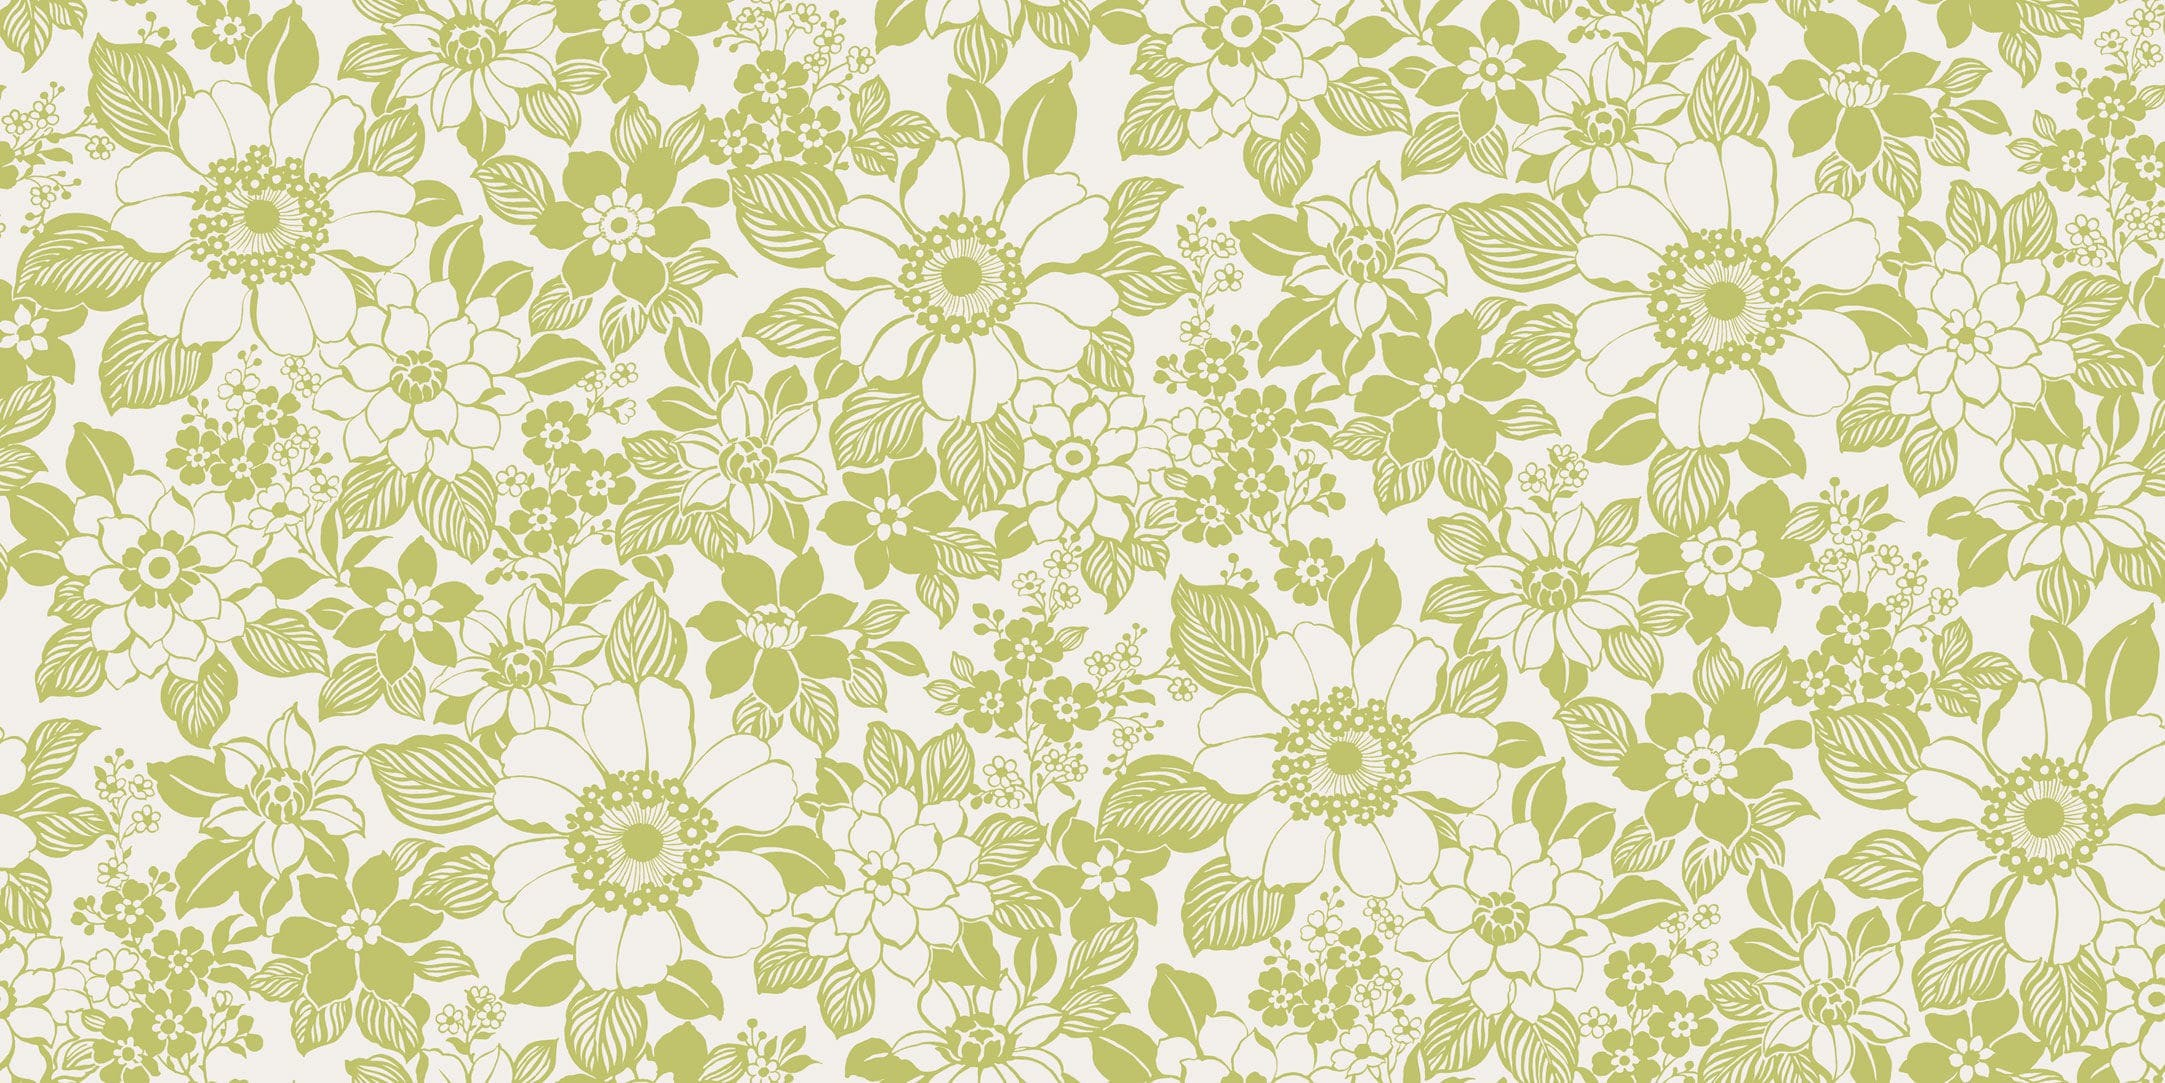 Contemporary wallpaper / floral pattern / white / green – 3878/3879